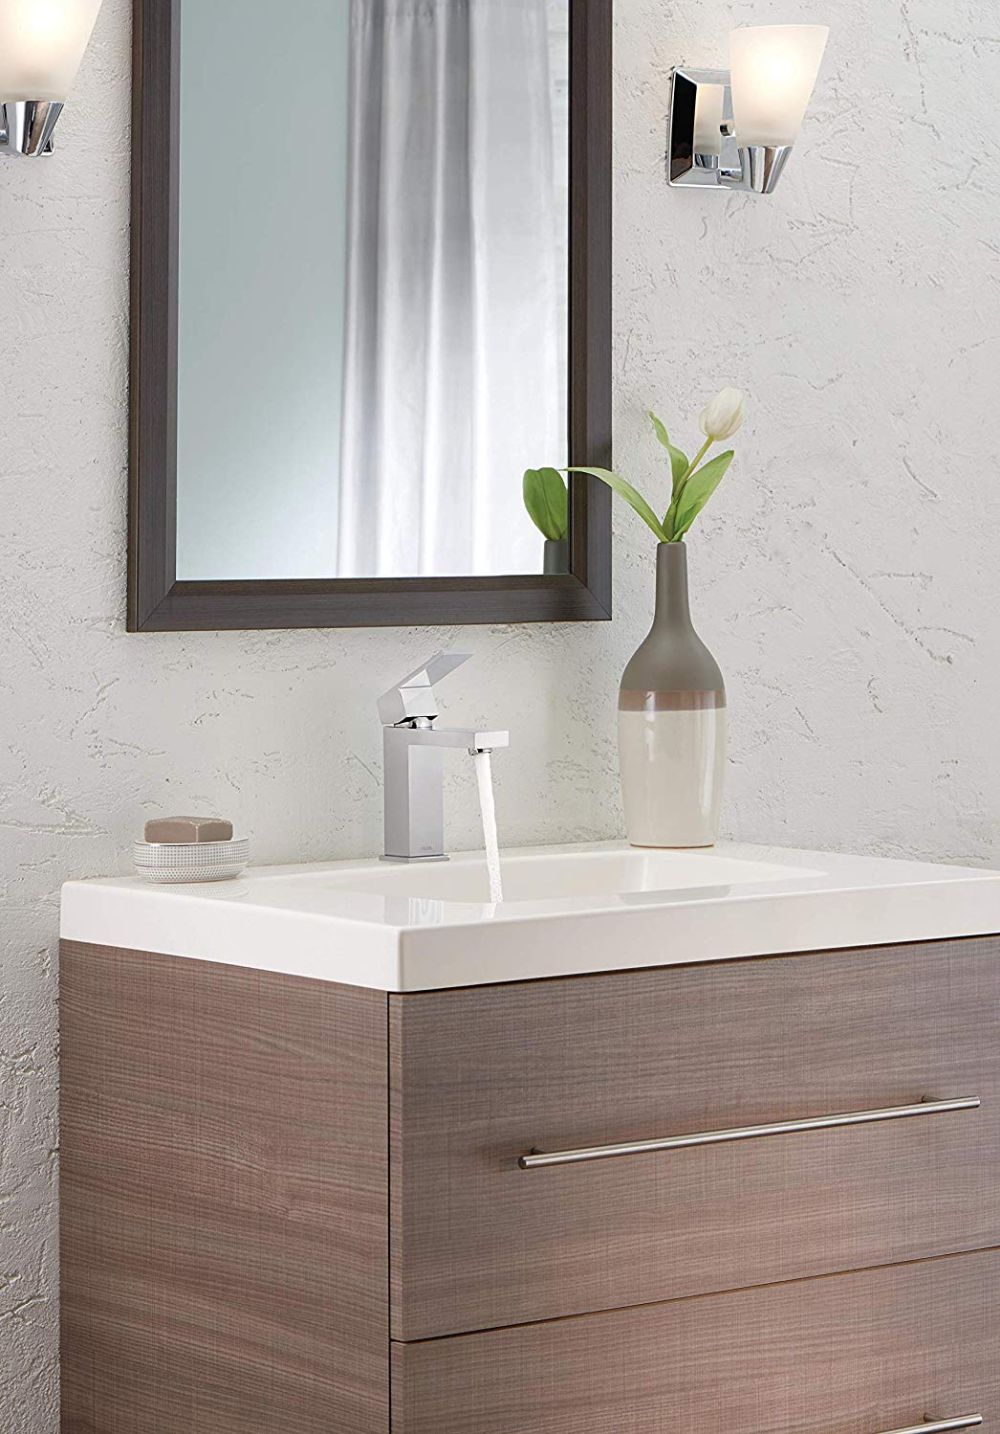 1570466067 231 the best bathroom sink faucets you can buy right now - The Best Bathroom Sink Faucets You Can Buy Right Now